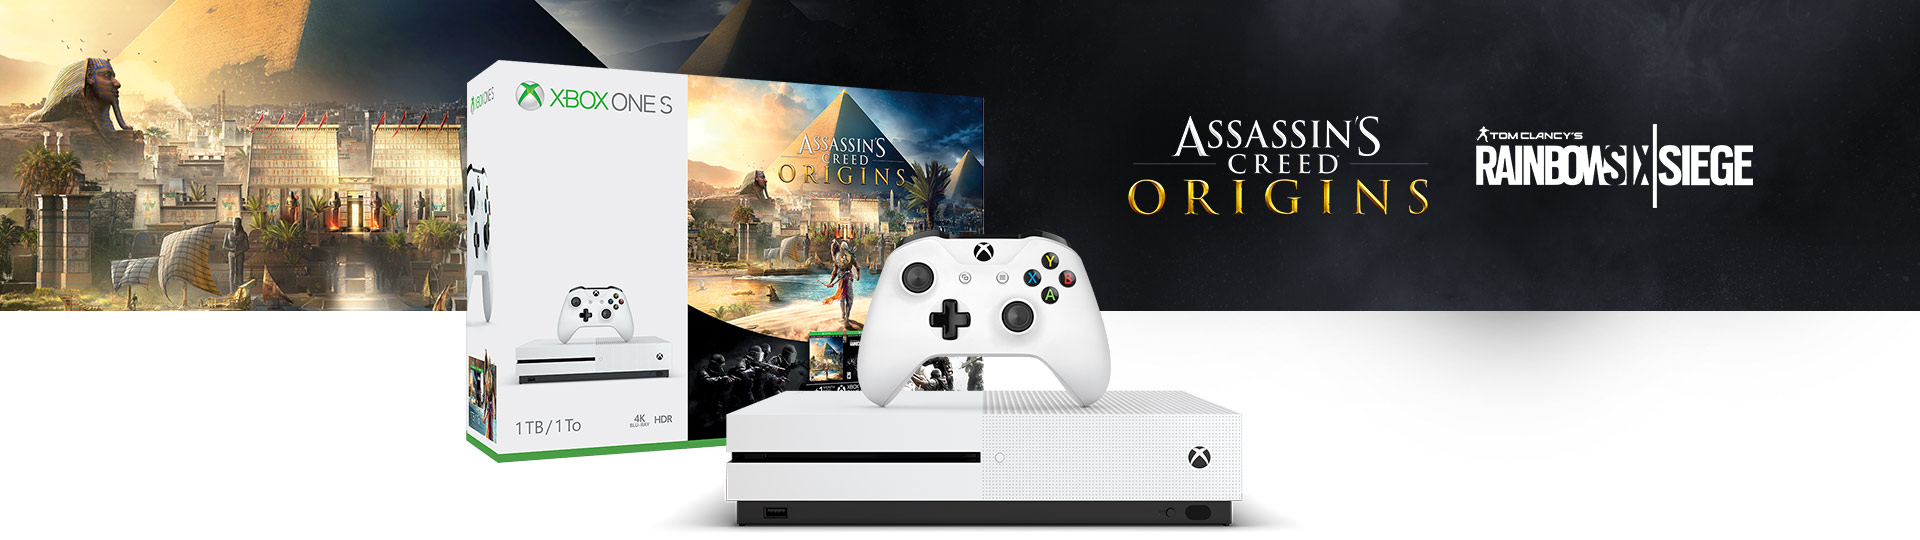 Pacote bônus do Assassin's Creed: Origins para Xbox One S (1 TB)